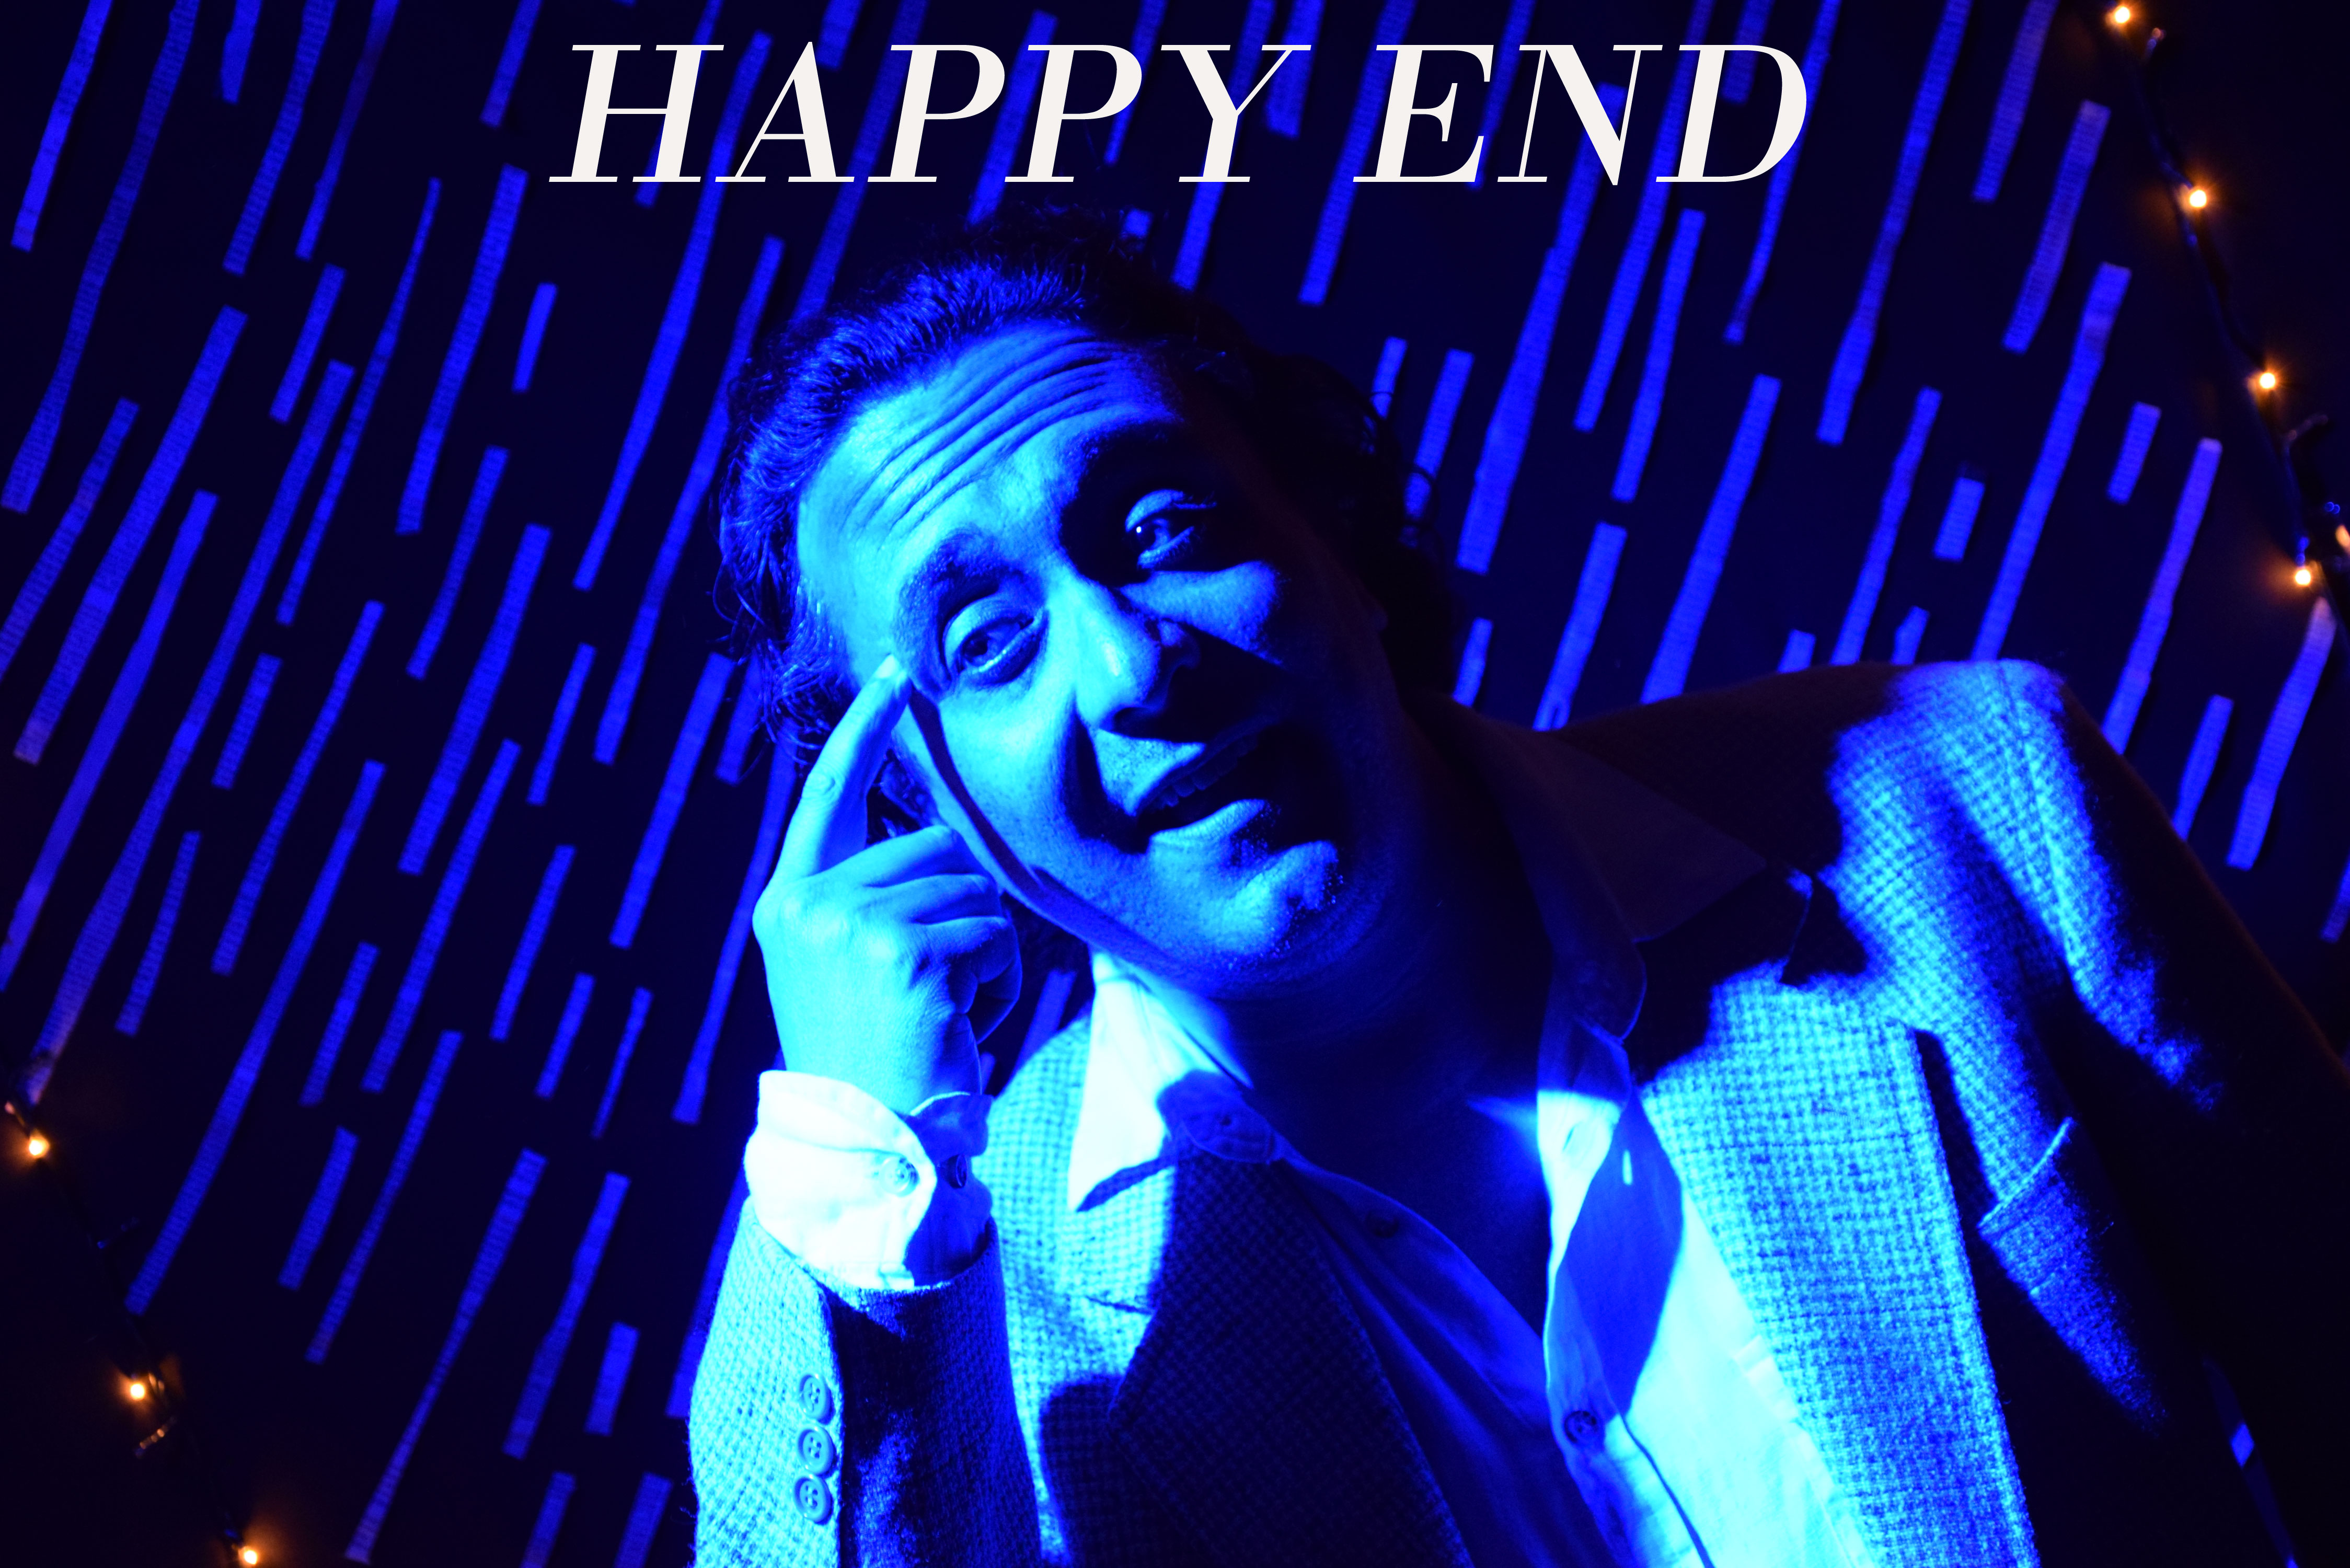 happy-end-3